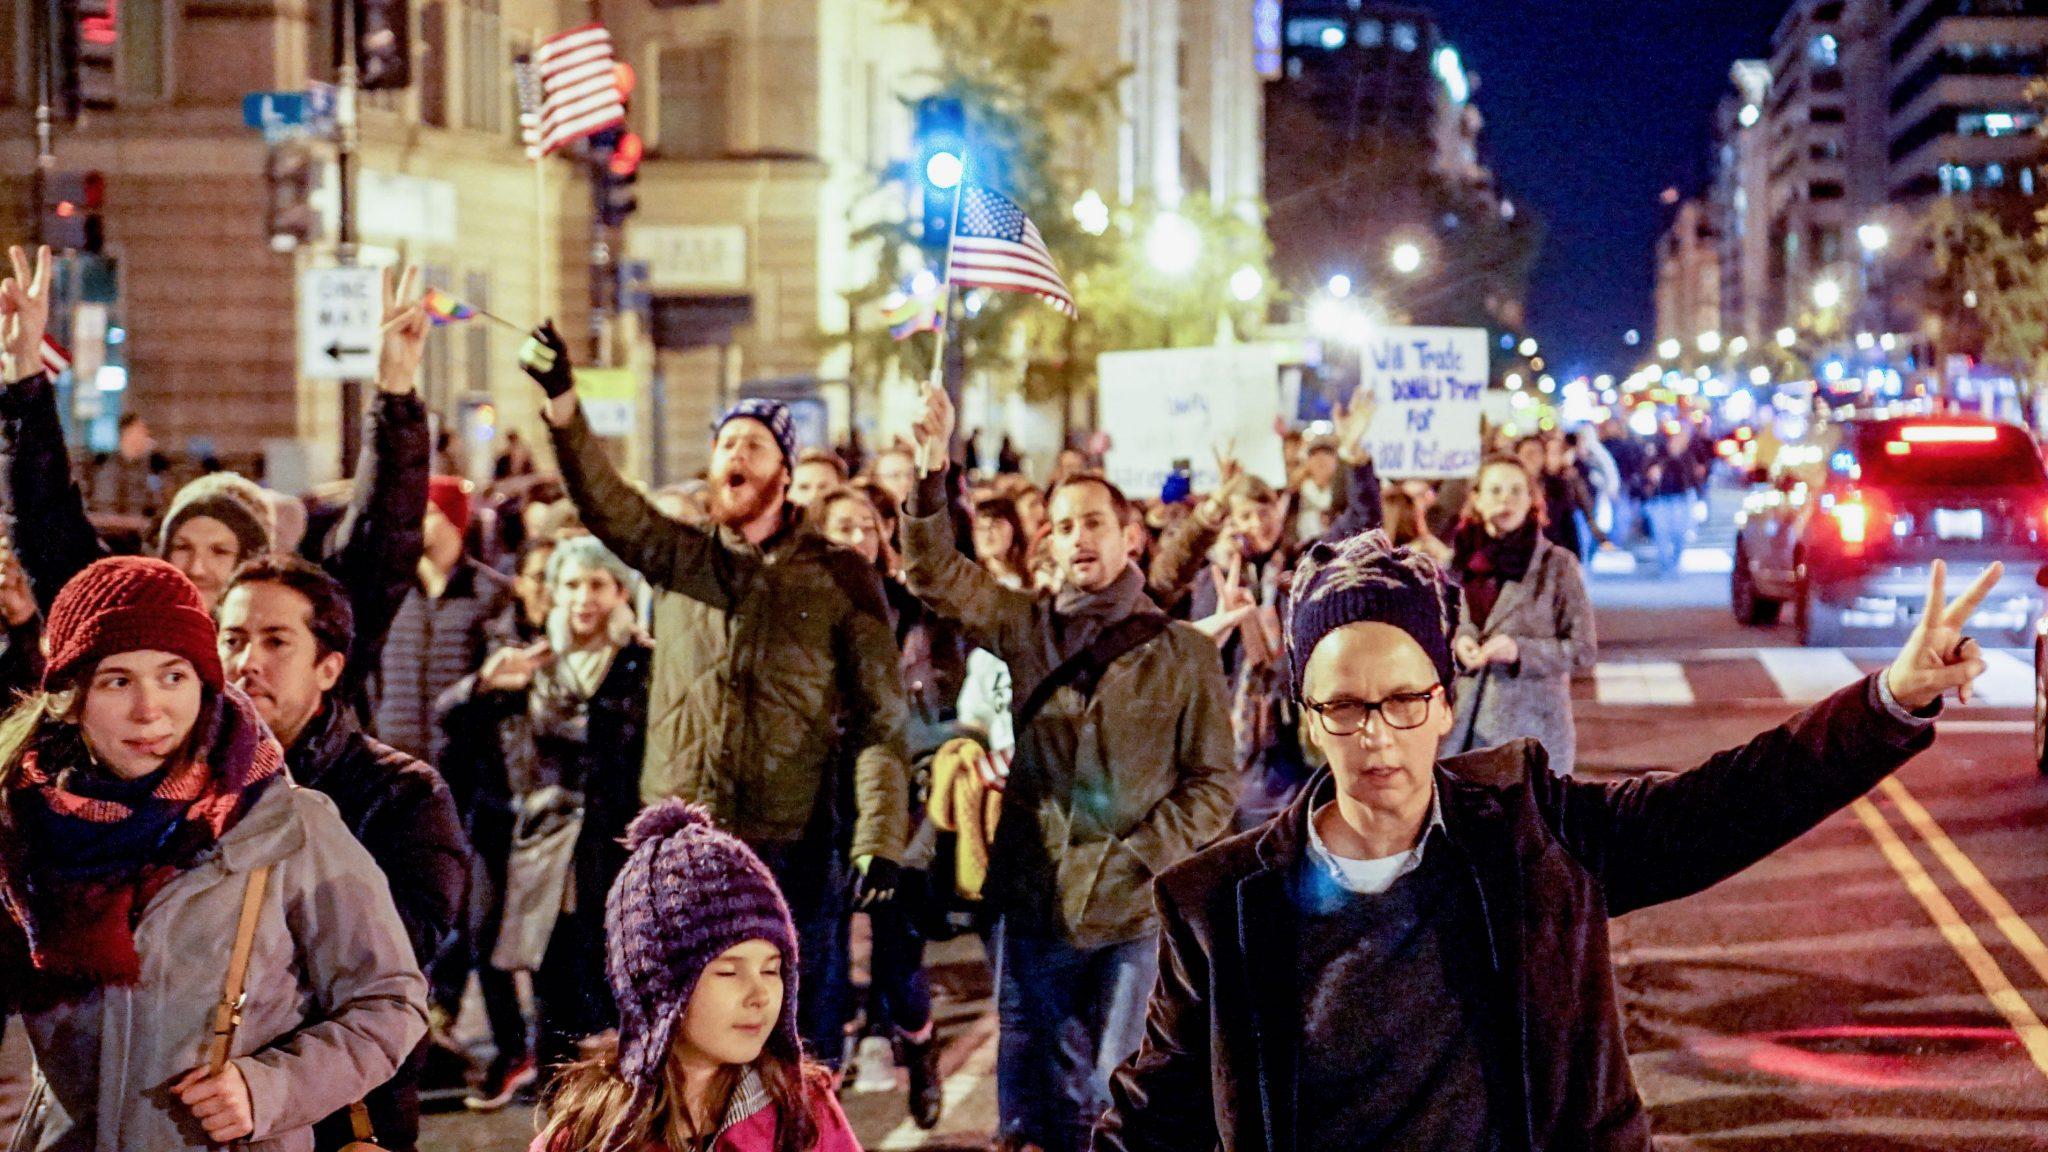 protest-washington-dc-11-16-2016